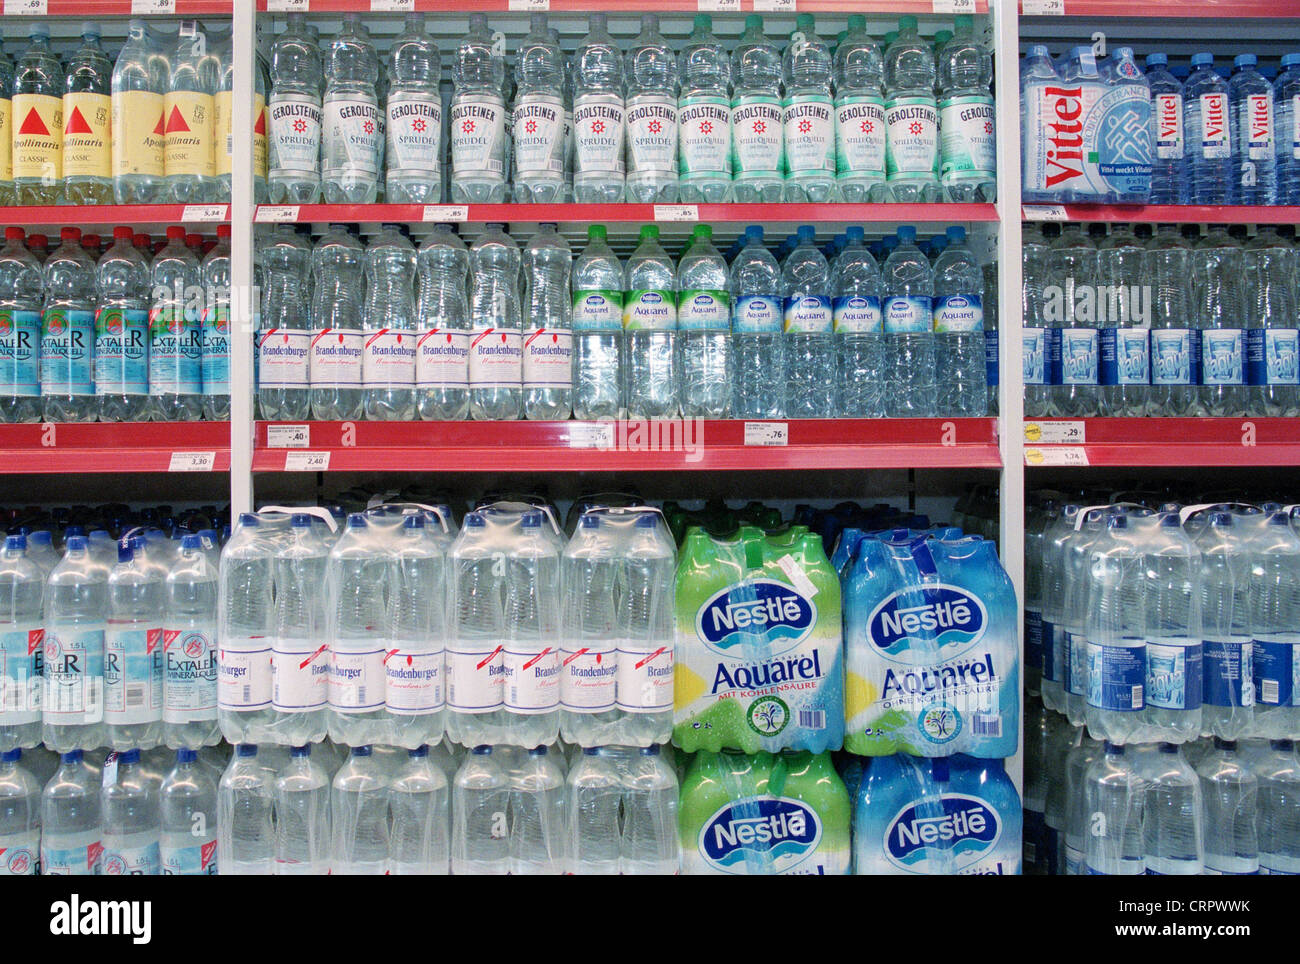 Supermarkt Regale Voller Mineralwasser Pet Flaschen Stockfoto Bild